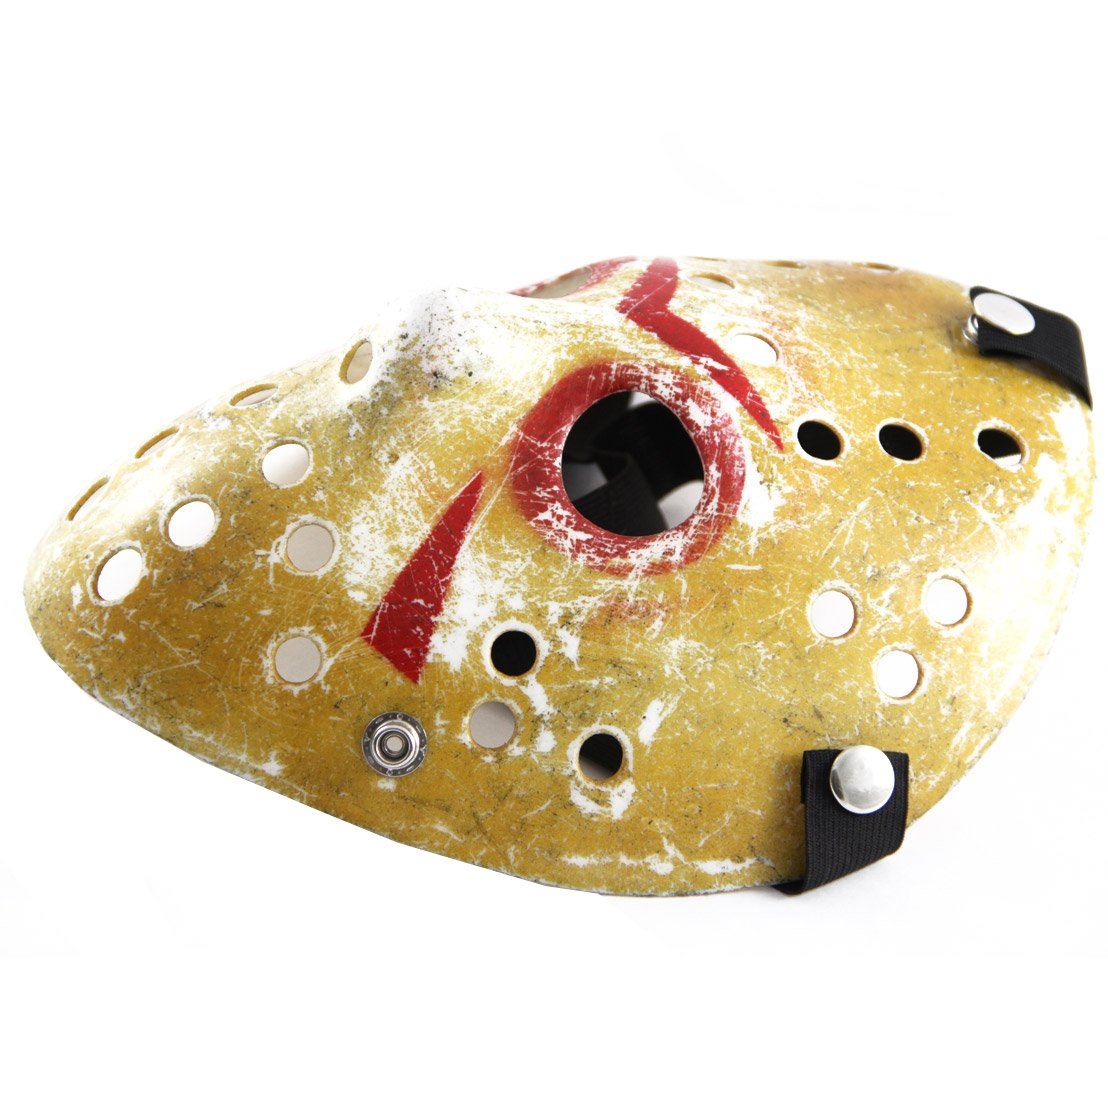 Renineic Friday The 13th Jason Voorhees Hocke Mask Jason Costumes Michael Myers Mask (3#): Childrens Costume Masks